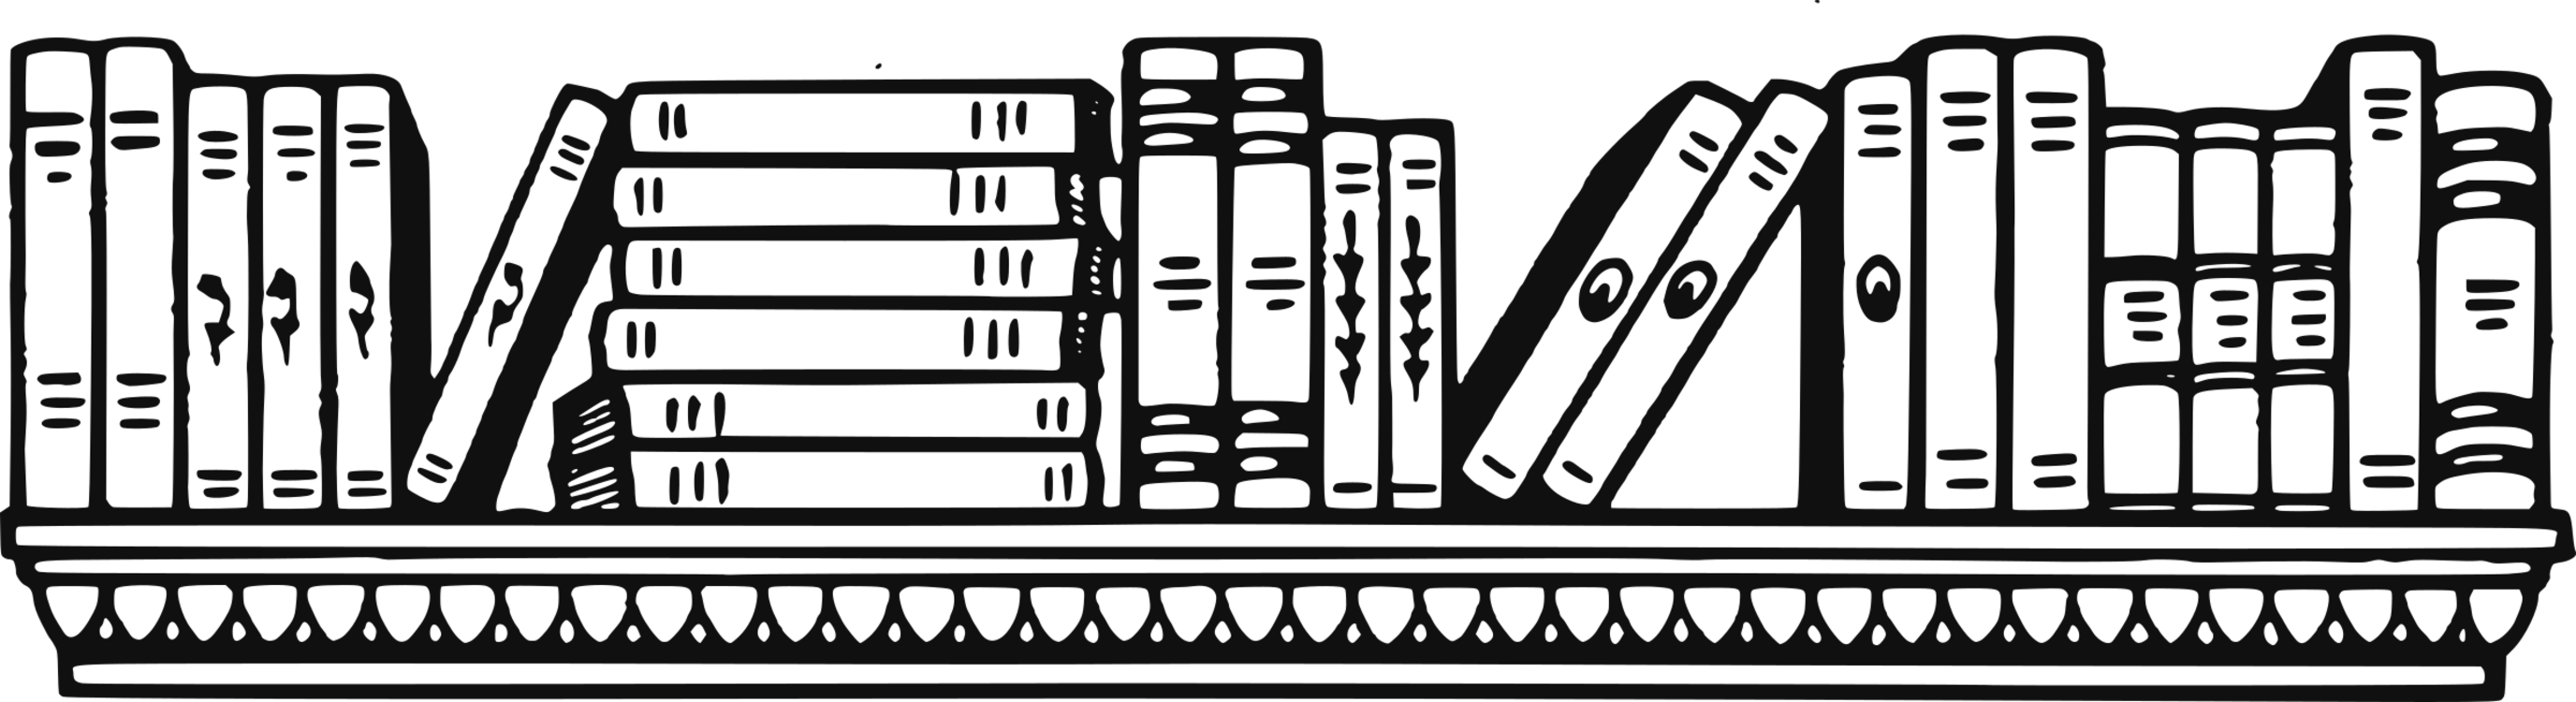 Image result for bookshelf drawing free domain